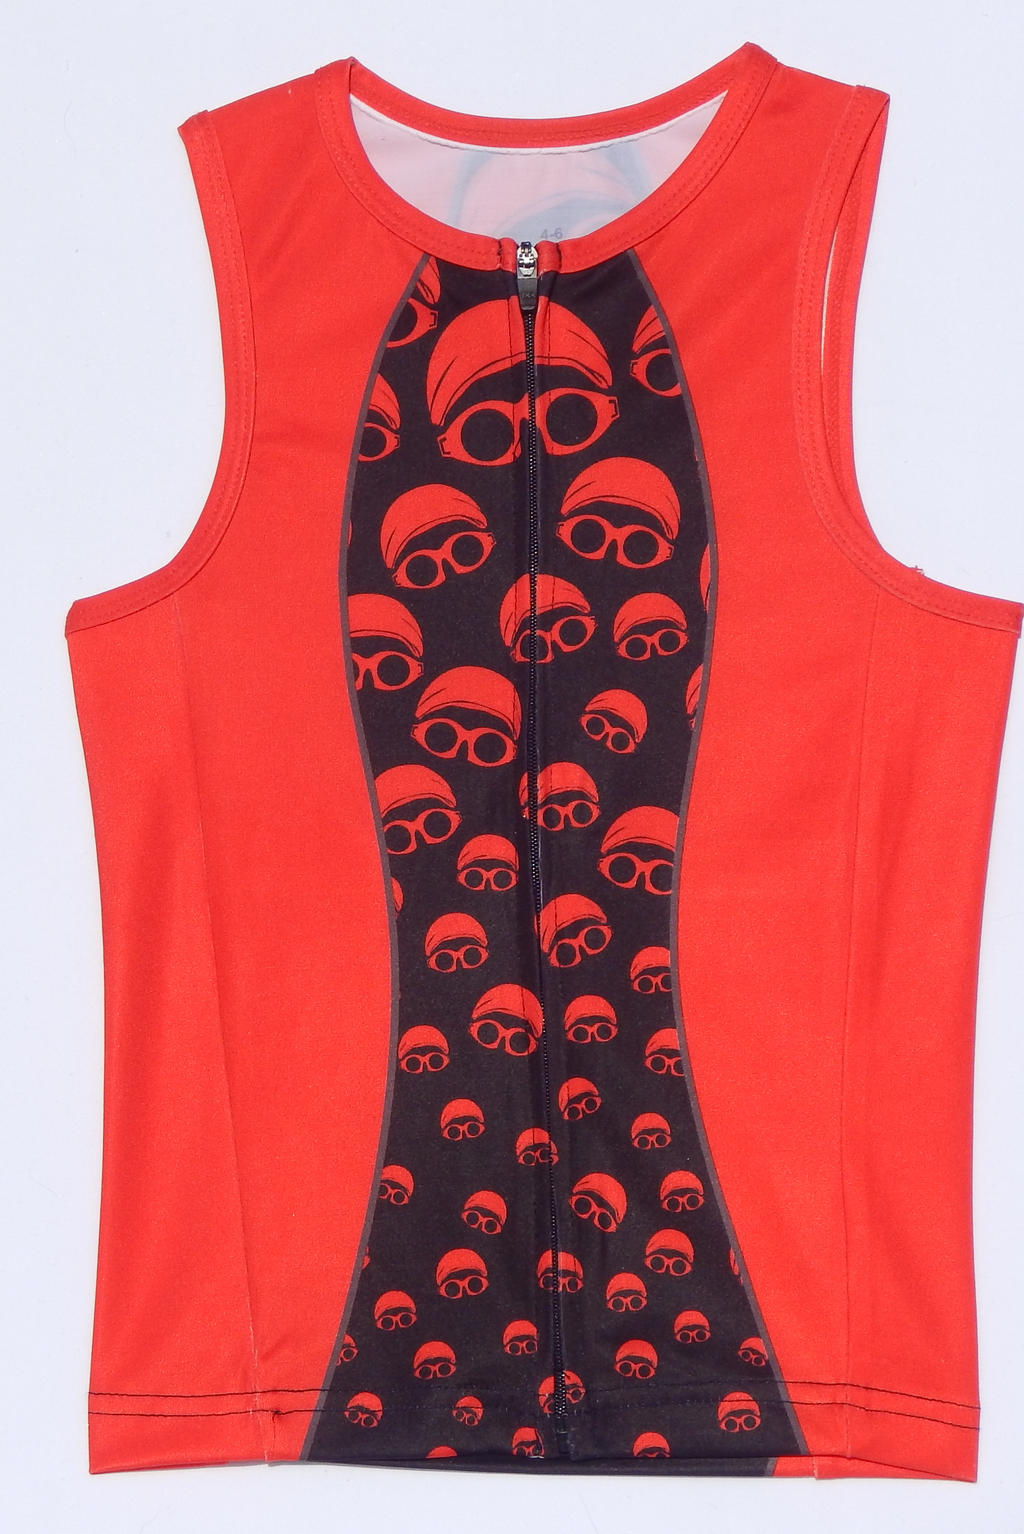 Red and Black Cap and Goggle Eyes Sleeveless Sports Jersey